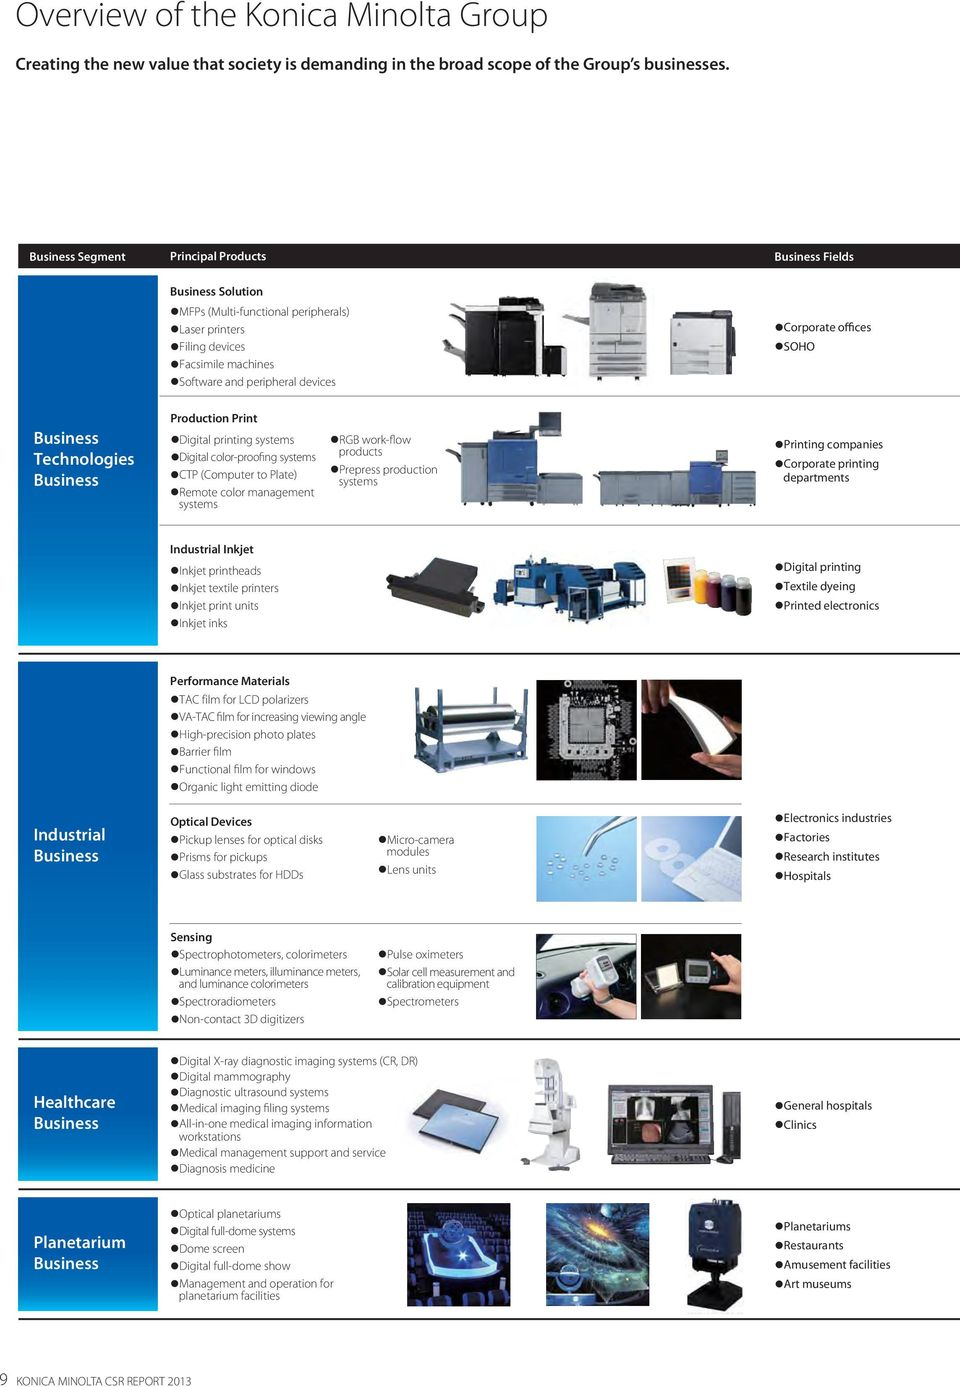 offices SOHO Business Technologies Business Production Print Digital printing systems Digital color-proofing systems CTP (Computer to Plate) Remote color management systems RGB work-flow products